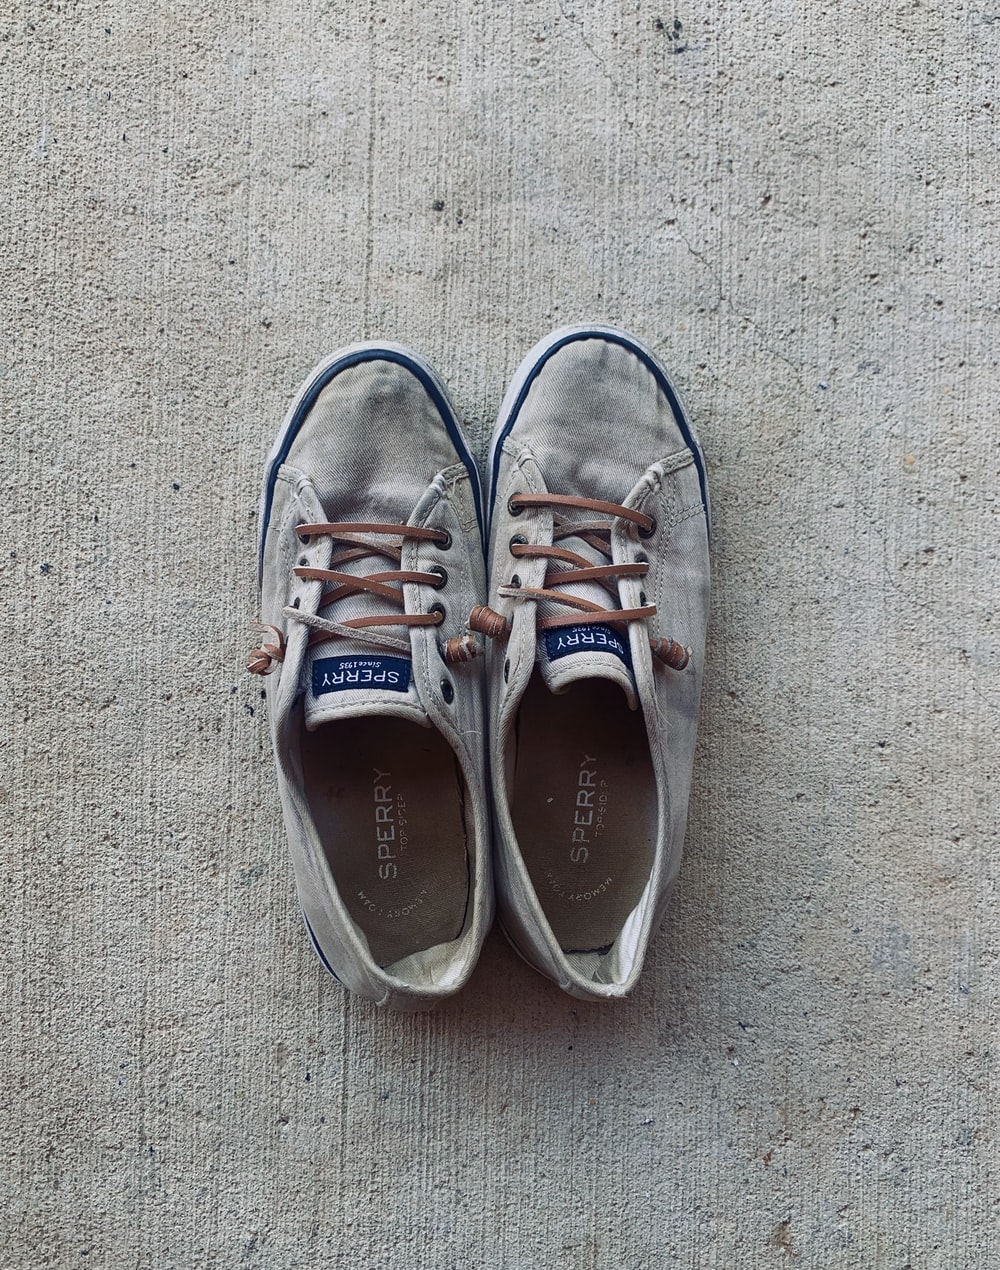 white and brown lace up sneakers